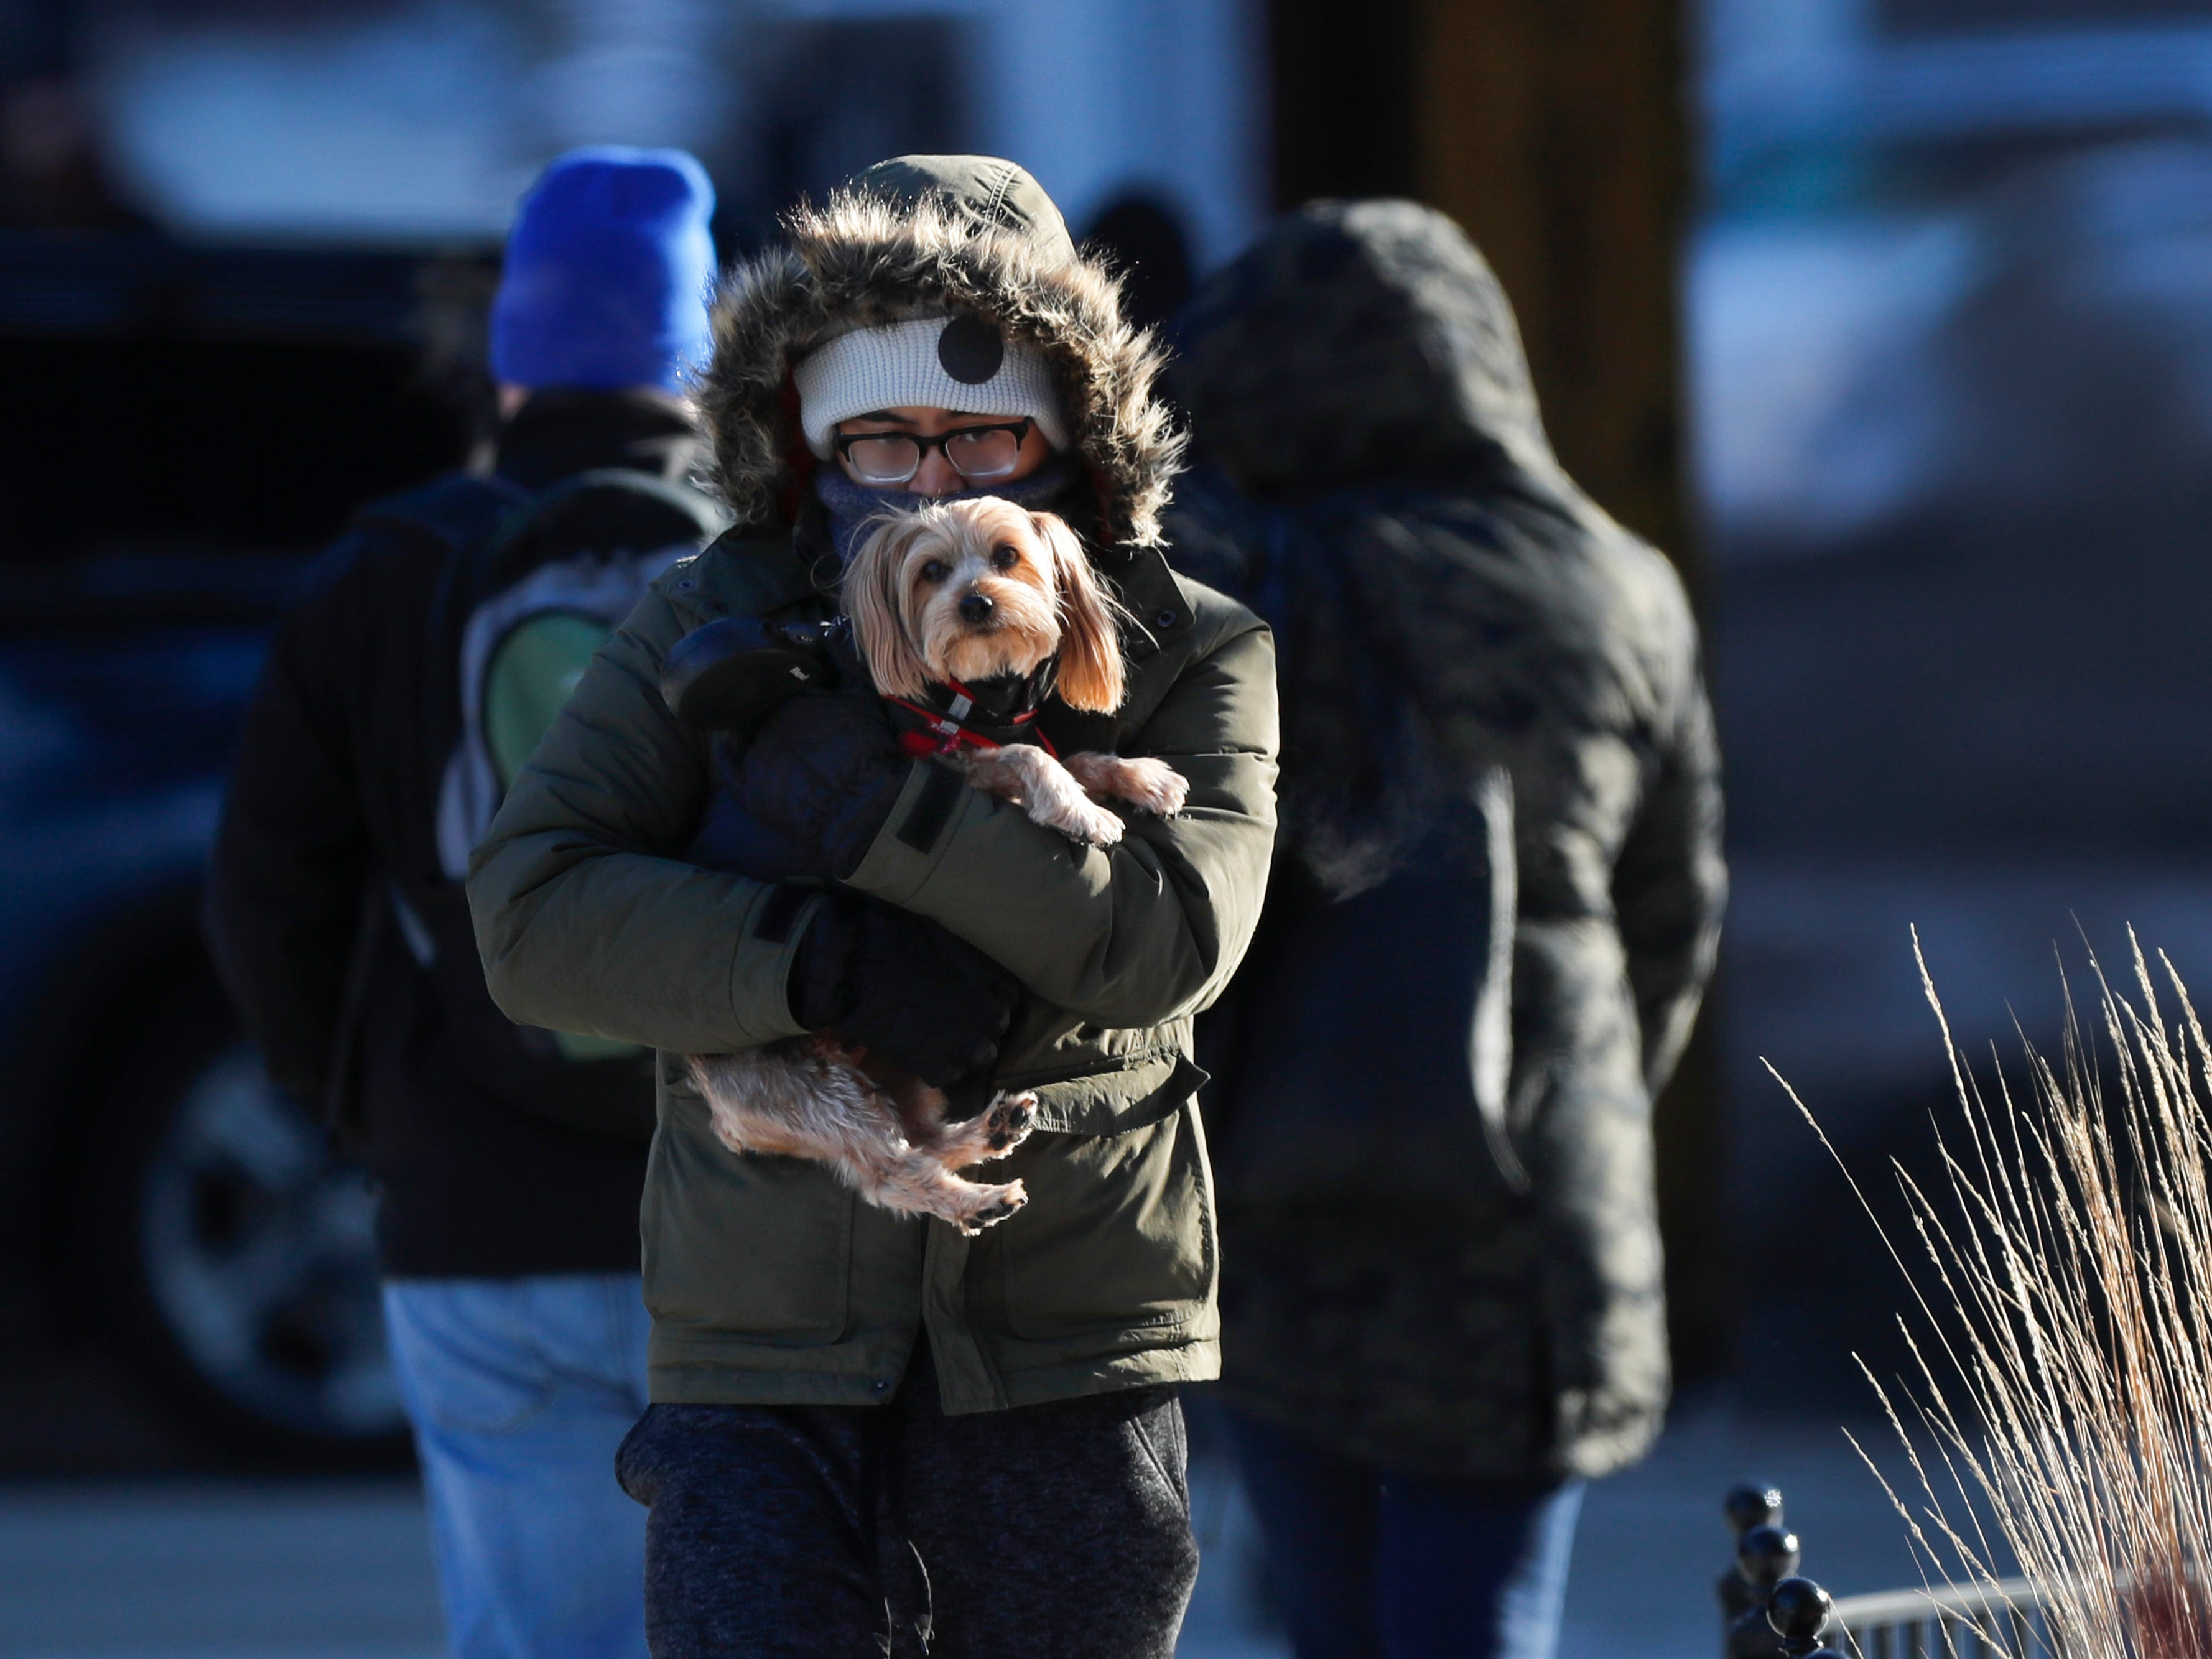 A man holds a dog as they enter a building in Chicago on a cold and frigid Jan. 25, 2019, morning.